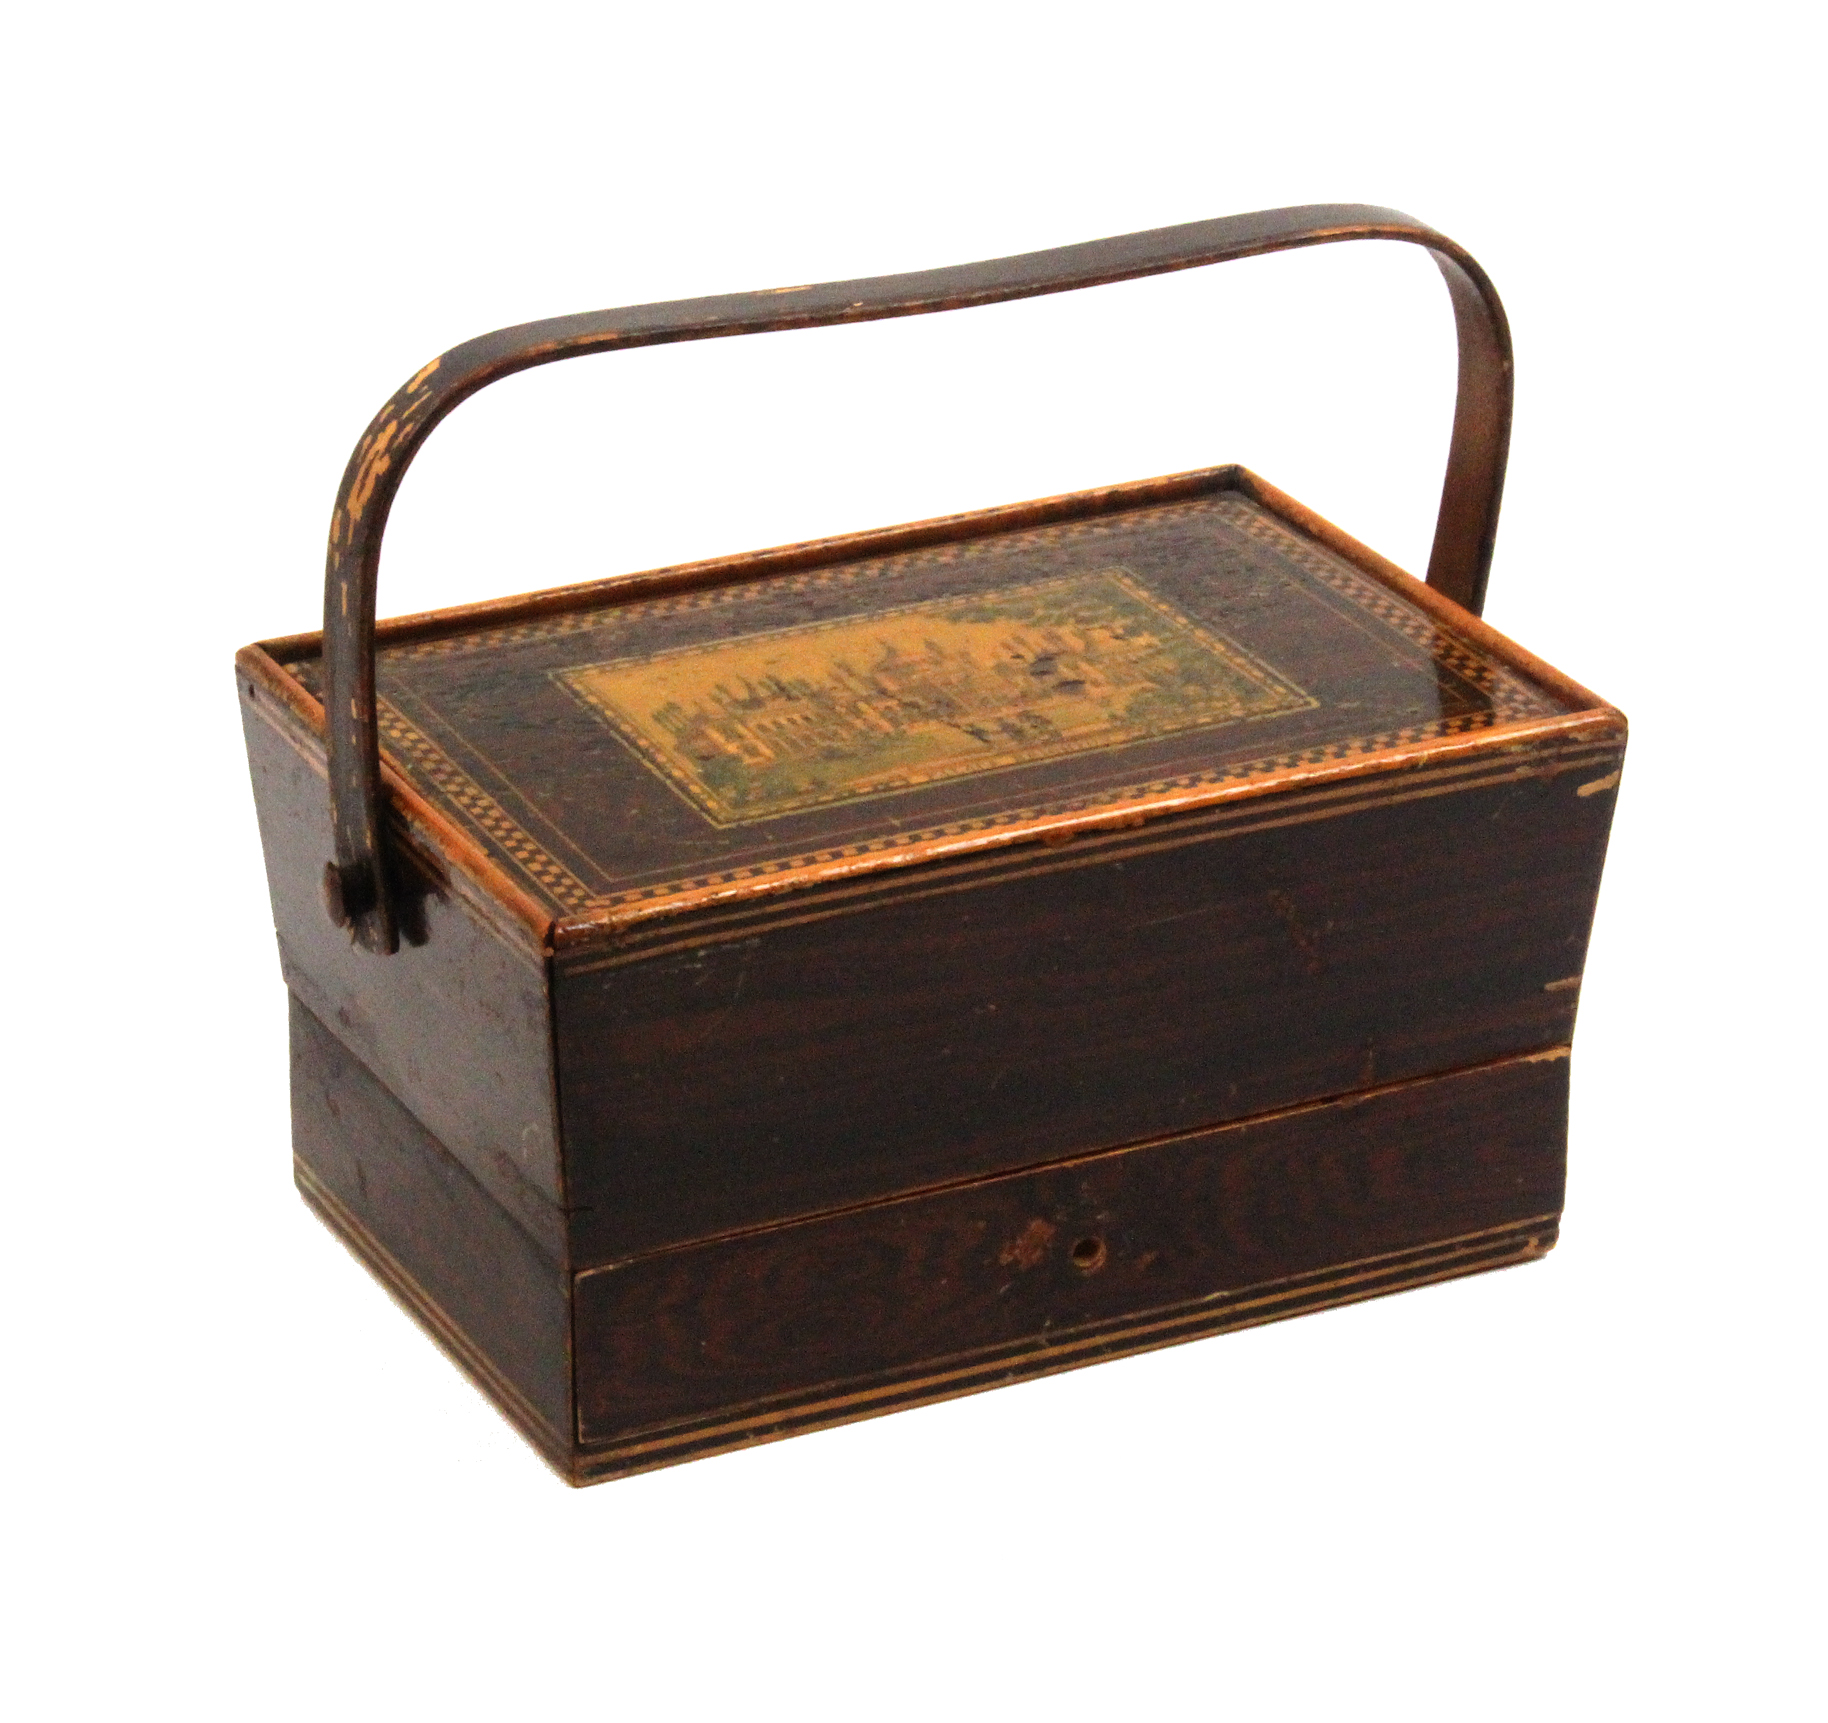 Lot 10 - An early Tunbridge ware print and paint decorated sewing pannier in simulated rosewood, the pin